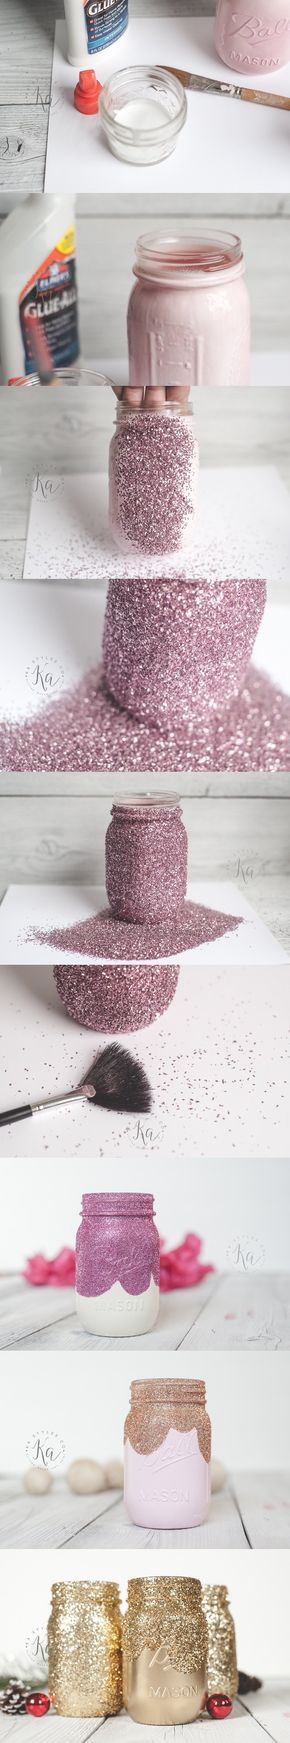 Tarros decorativos con purpurina - kastyles.co - DIY Glitter Mason Jar